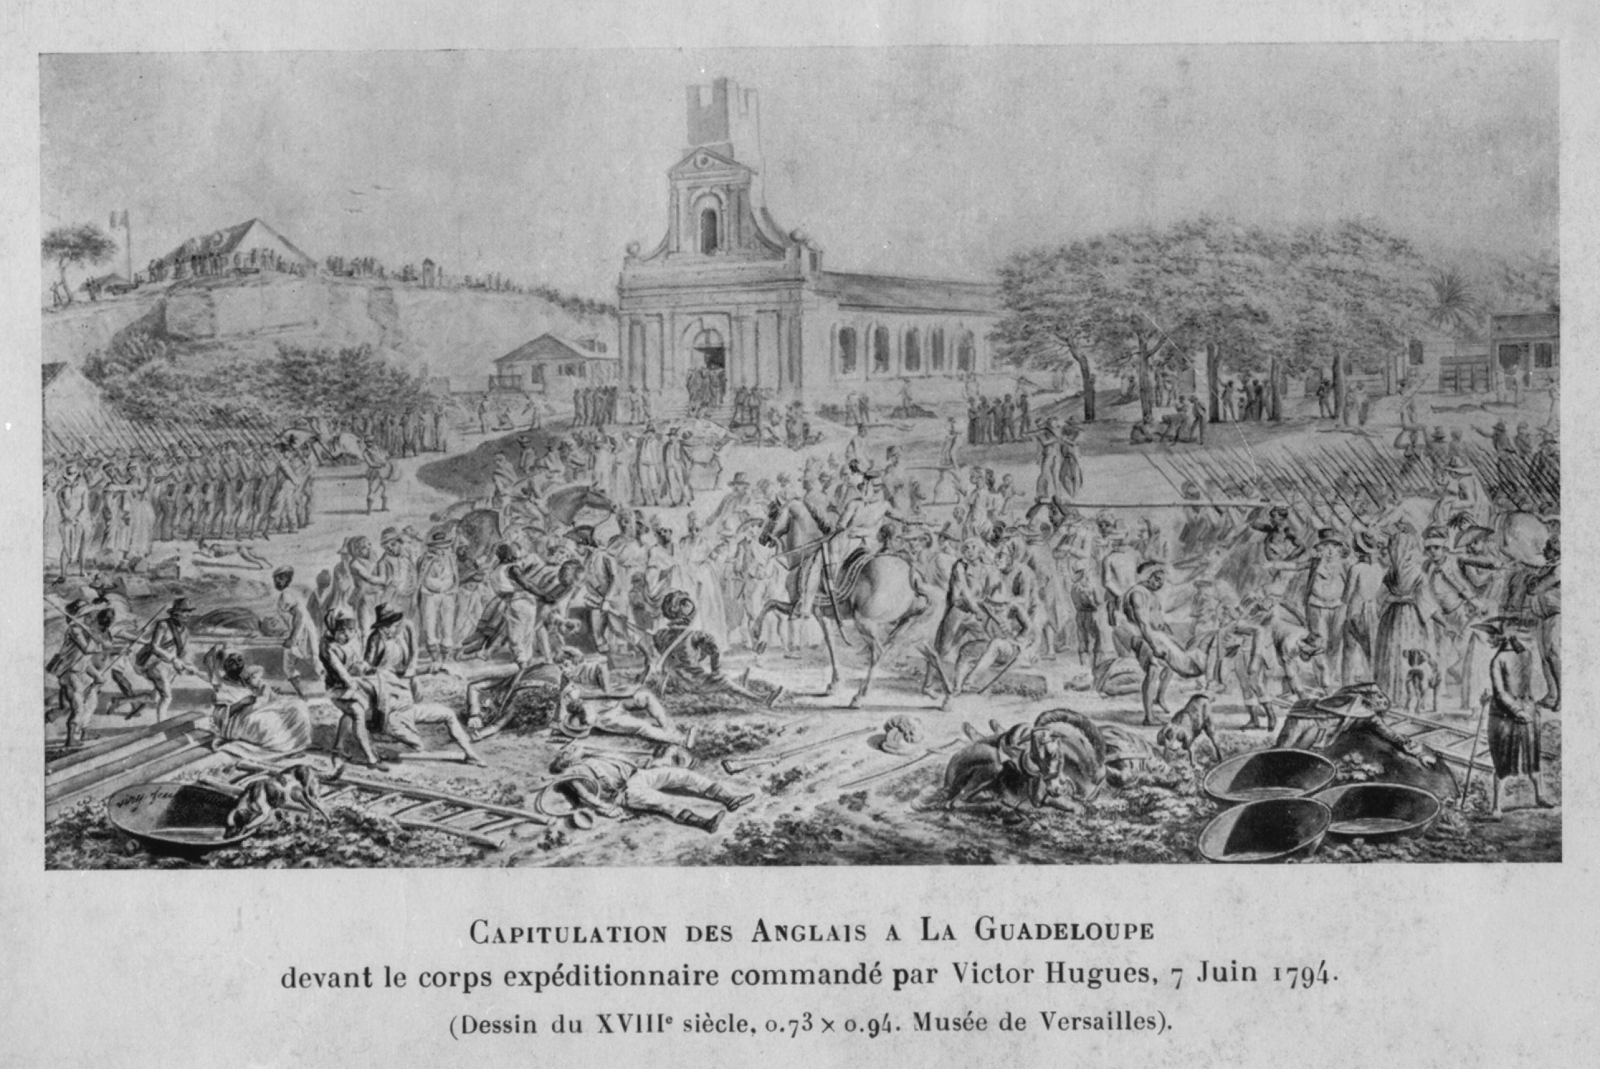 Slavery and the Struggle for Freedom in St. Martin